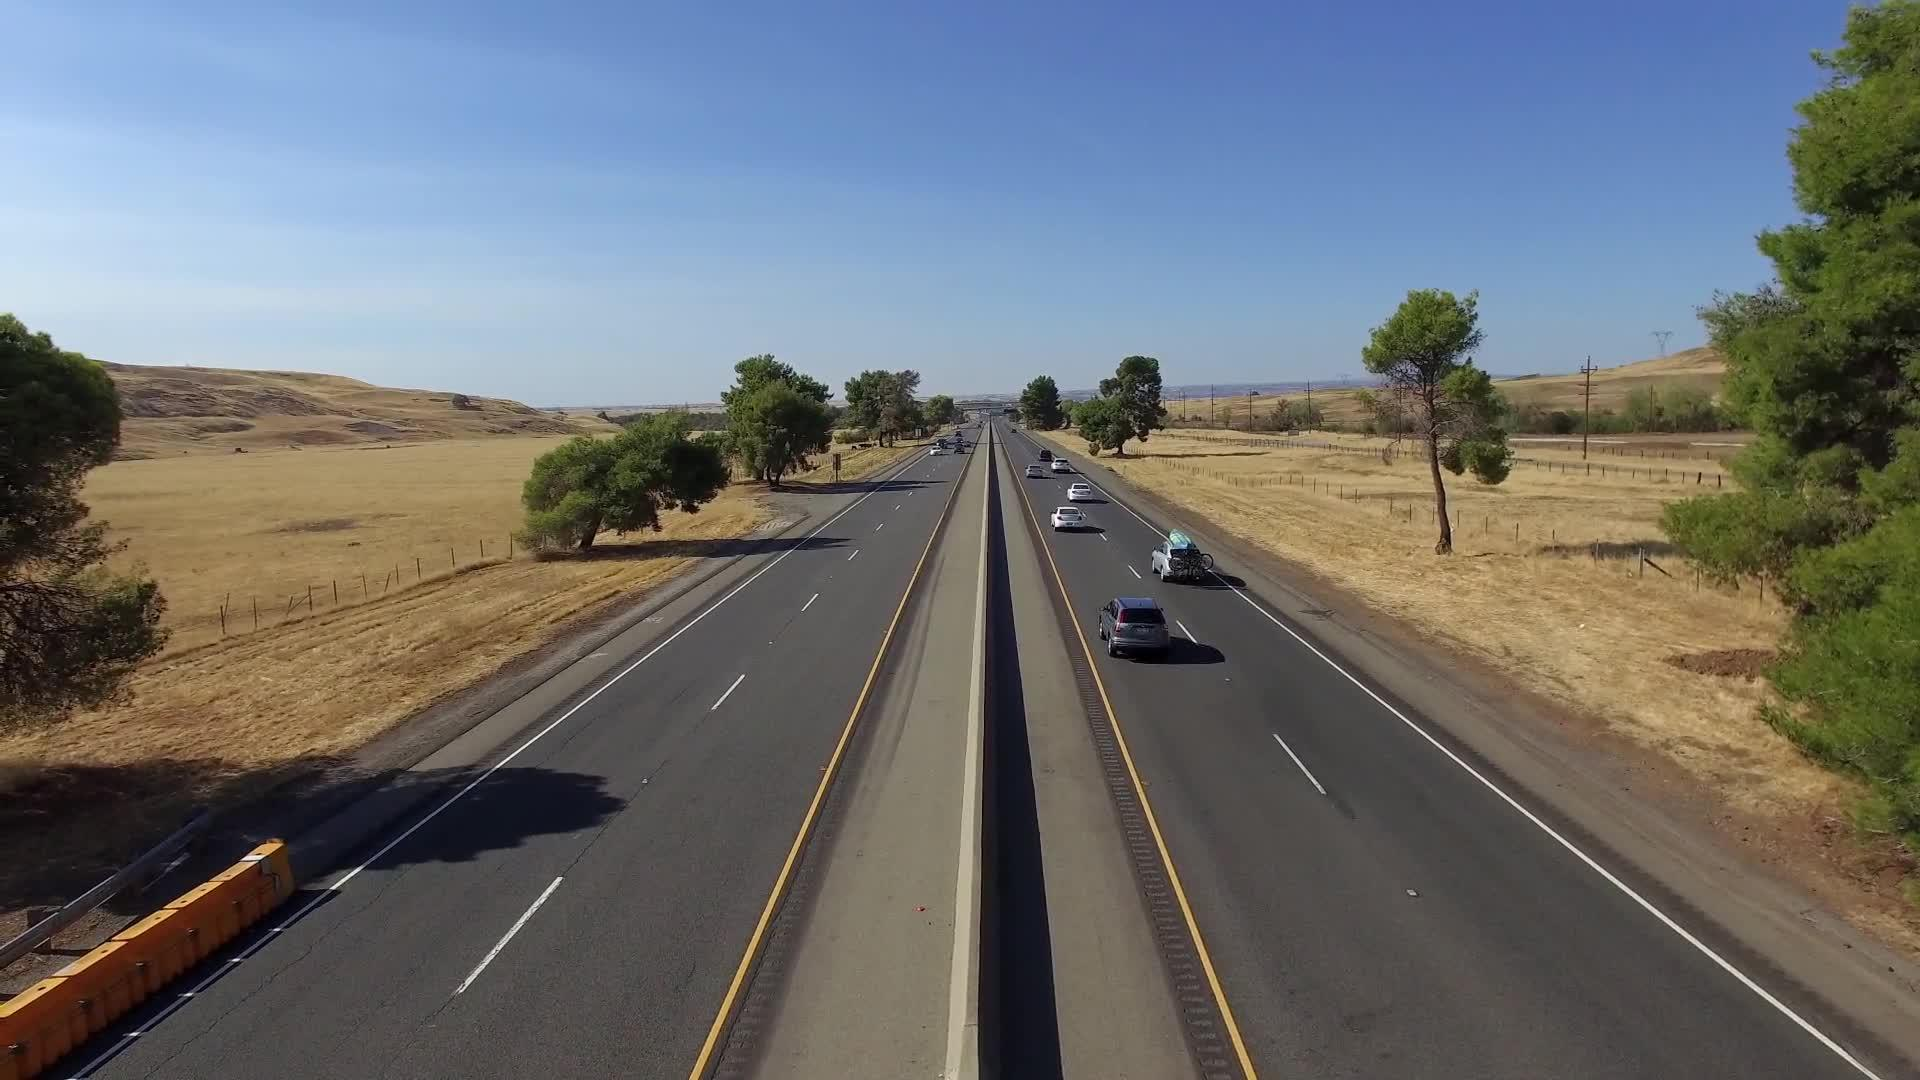 8 3 Million Approved To Widen Six Miles Of State Route 70 | NSPR